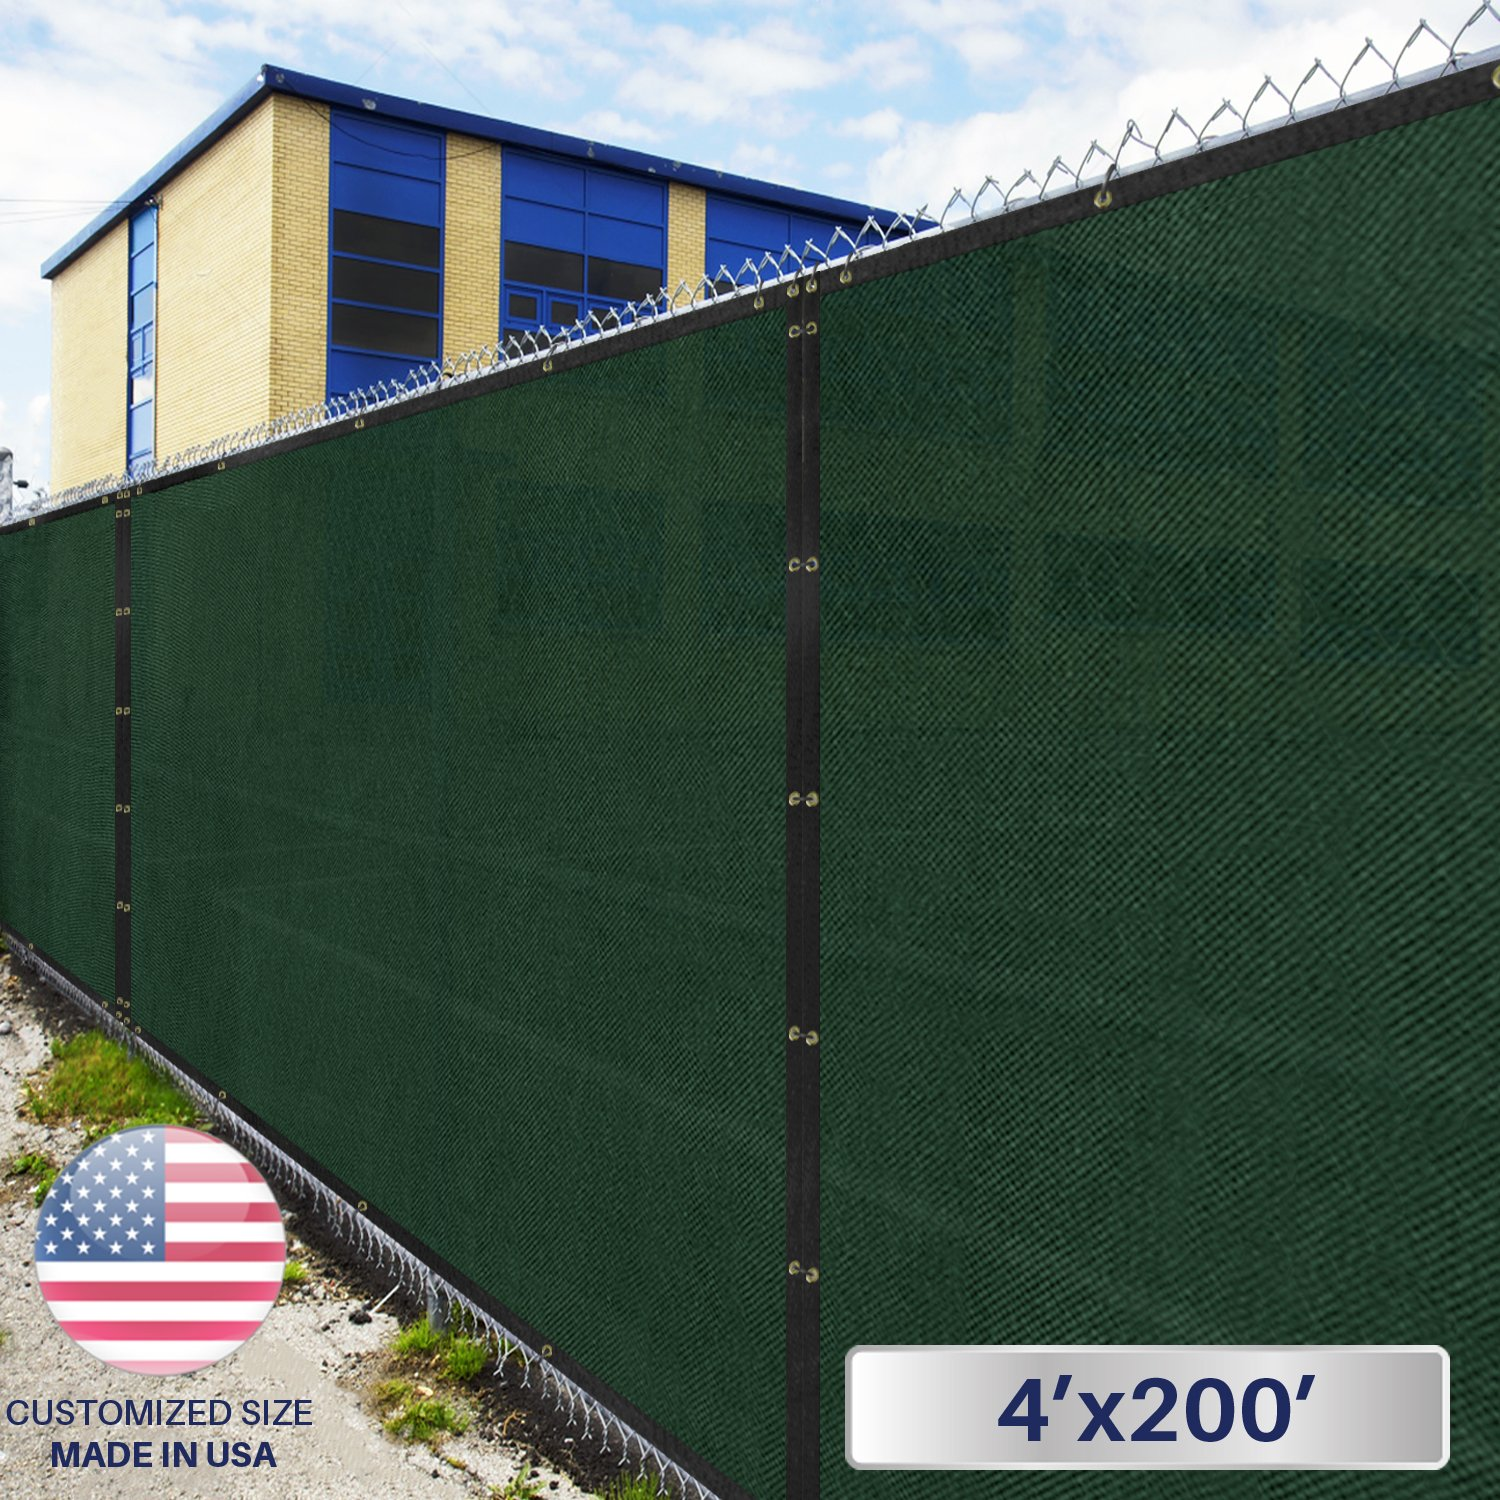 4' x 200' Privacy Fence Screen in Green with Brass Grommet 85% Blockage Windscreen Outdoor Mesh Fencing Cover Netting 150GSM Fabric - Custom Size by Windscreen4less